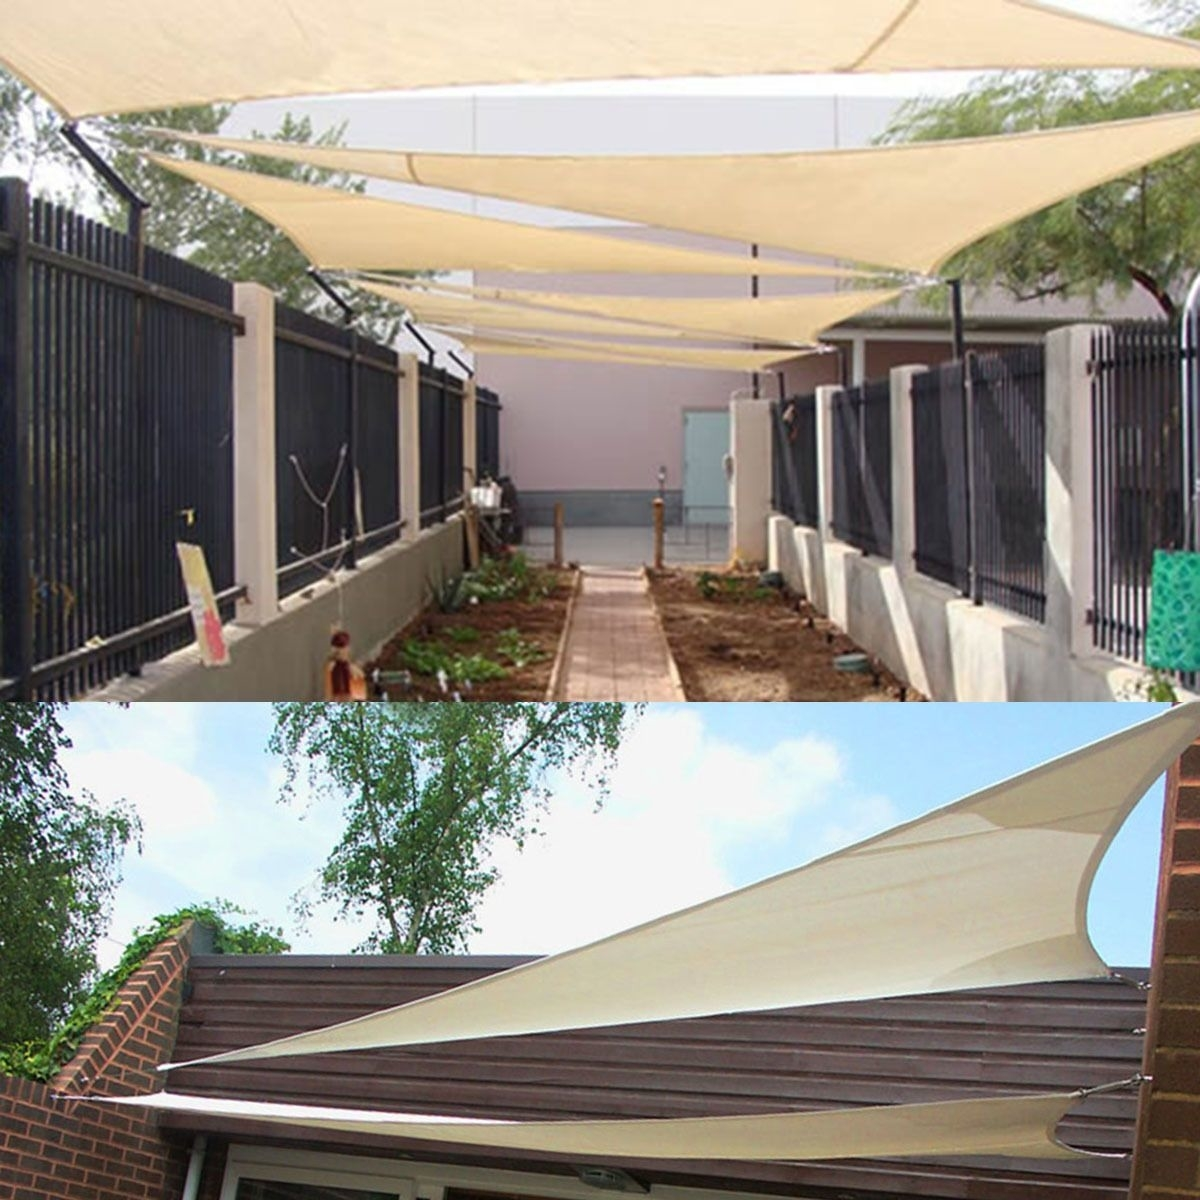 11.8' /16.4' Triangle Sun Shade Sail UV Top Outdoor Canopy Patio Lawn Cover Pool 59f3f4f5c98fc43fef609751